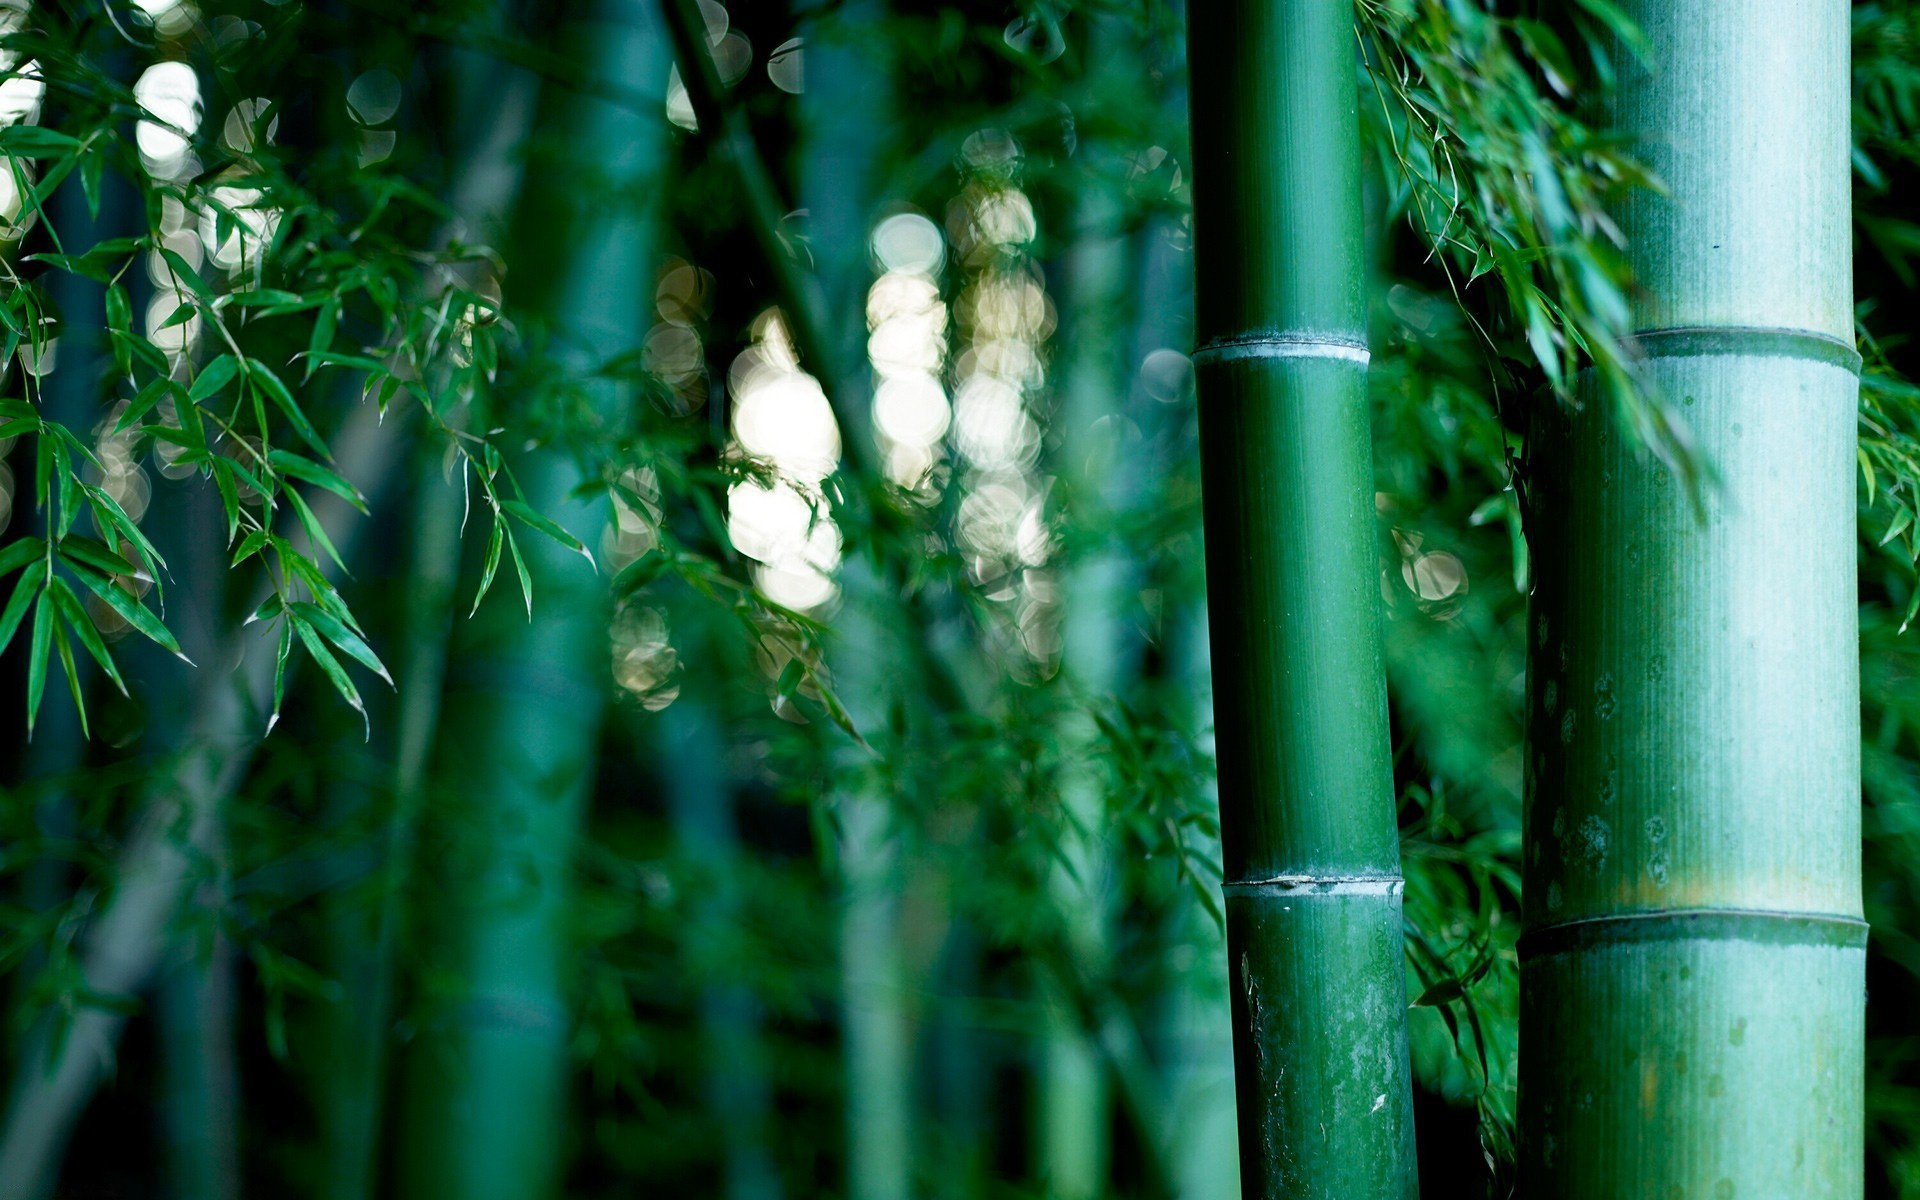 of earth ro bamboo For instance, ten bamboo stalks denotes all things good in life gifting ten bamboo stalks shows that you want the person to have a perfect happy life the lucky bamboo plays a significant role in fen.